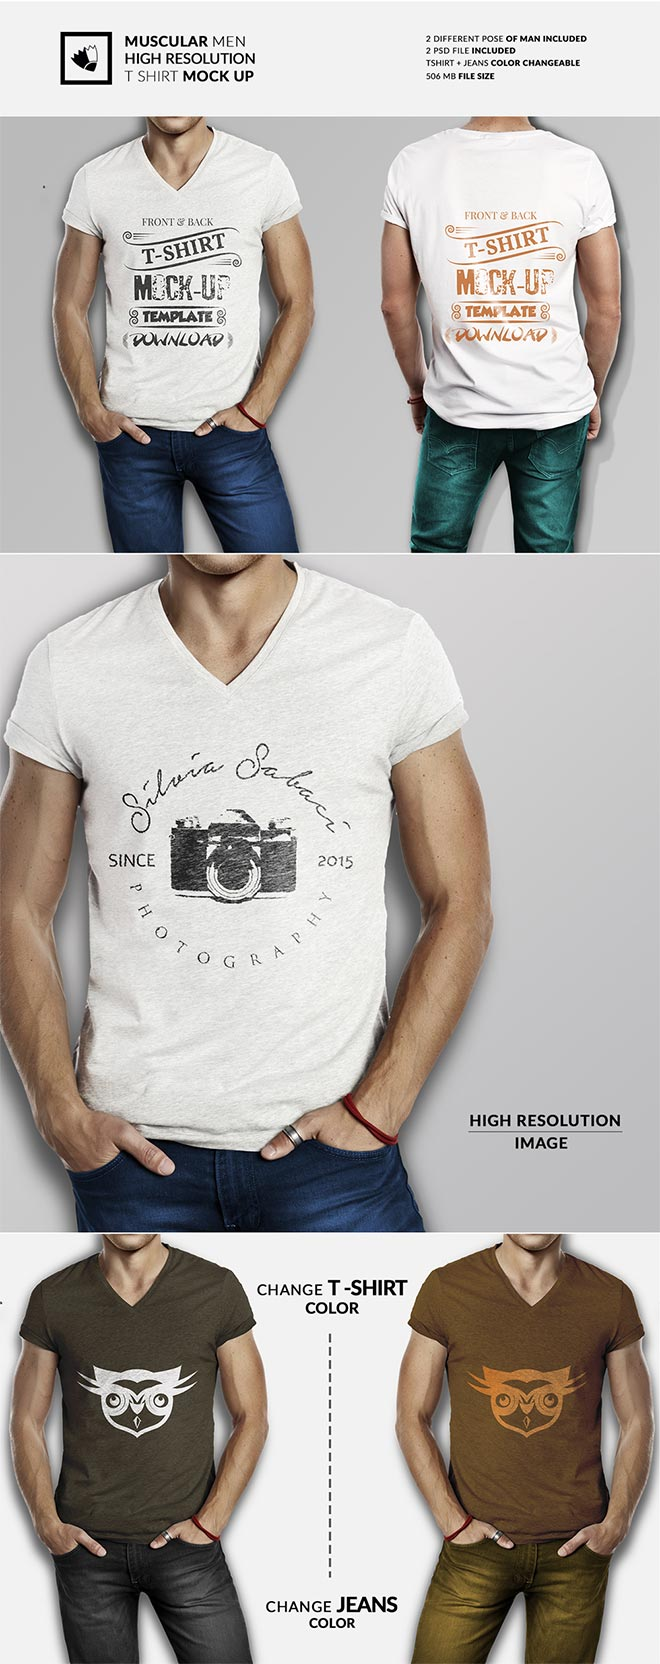 Muscular men high resolution t shirt mockup